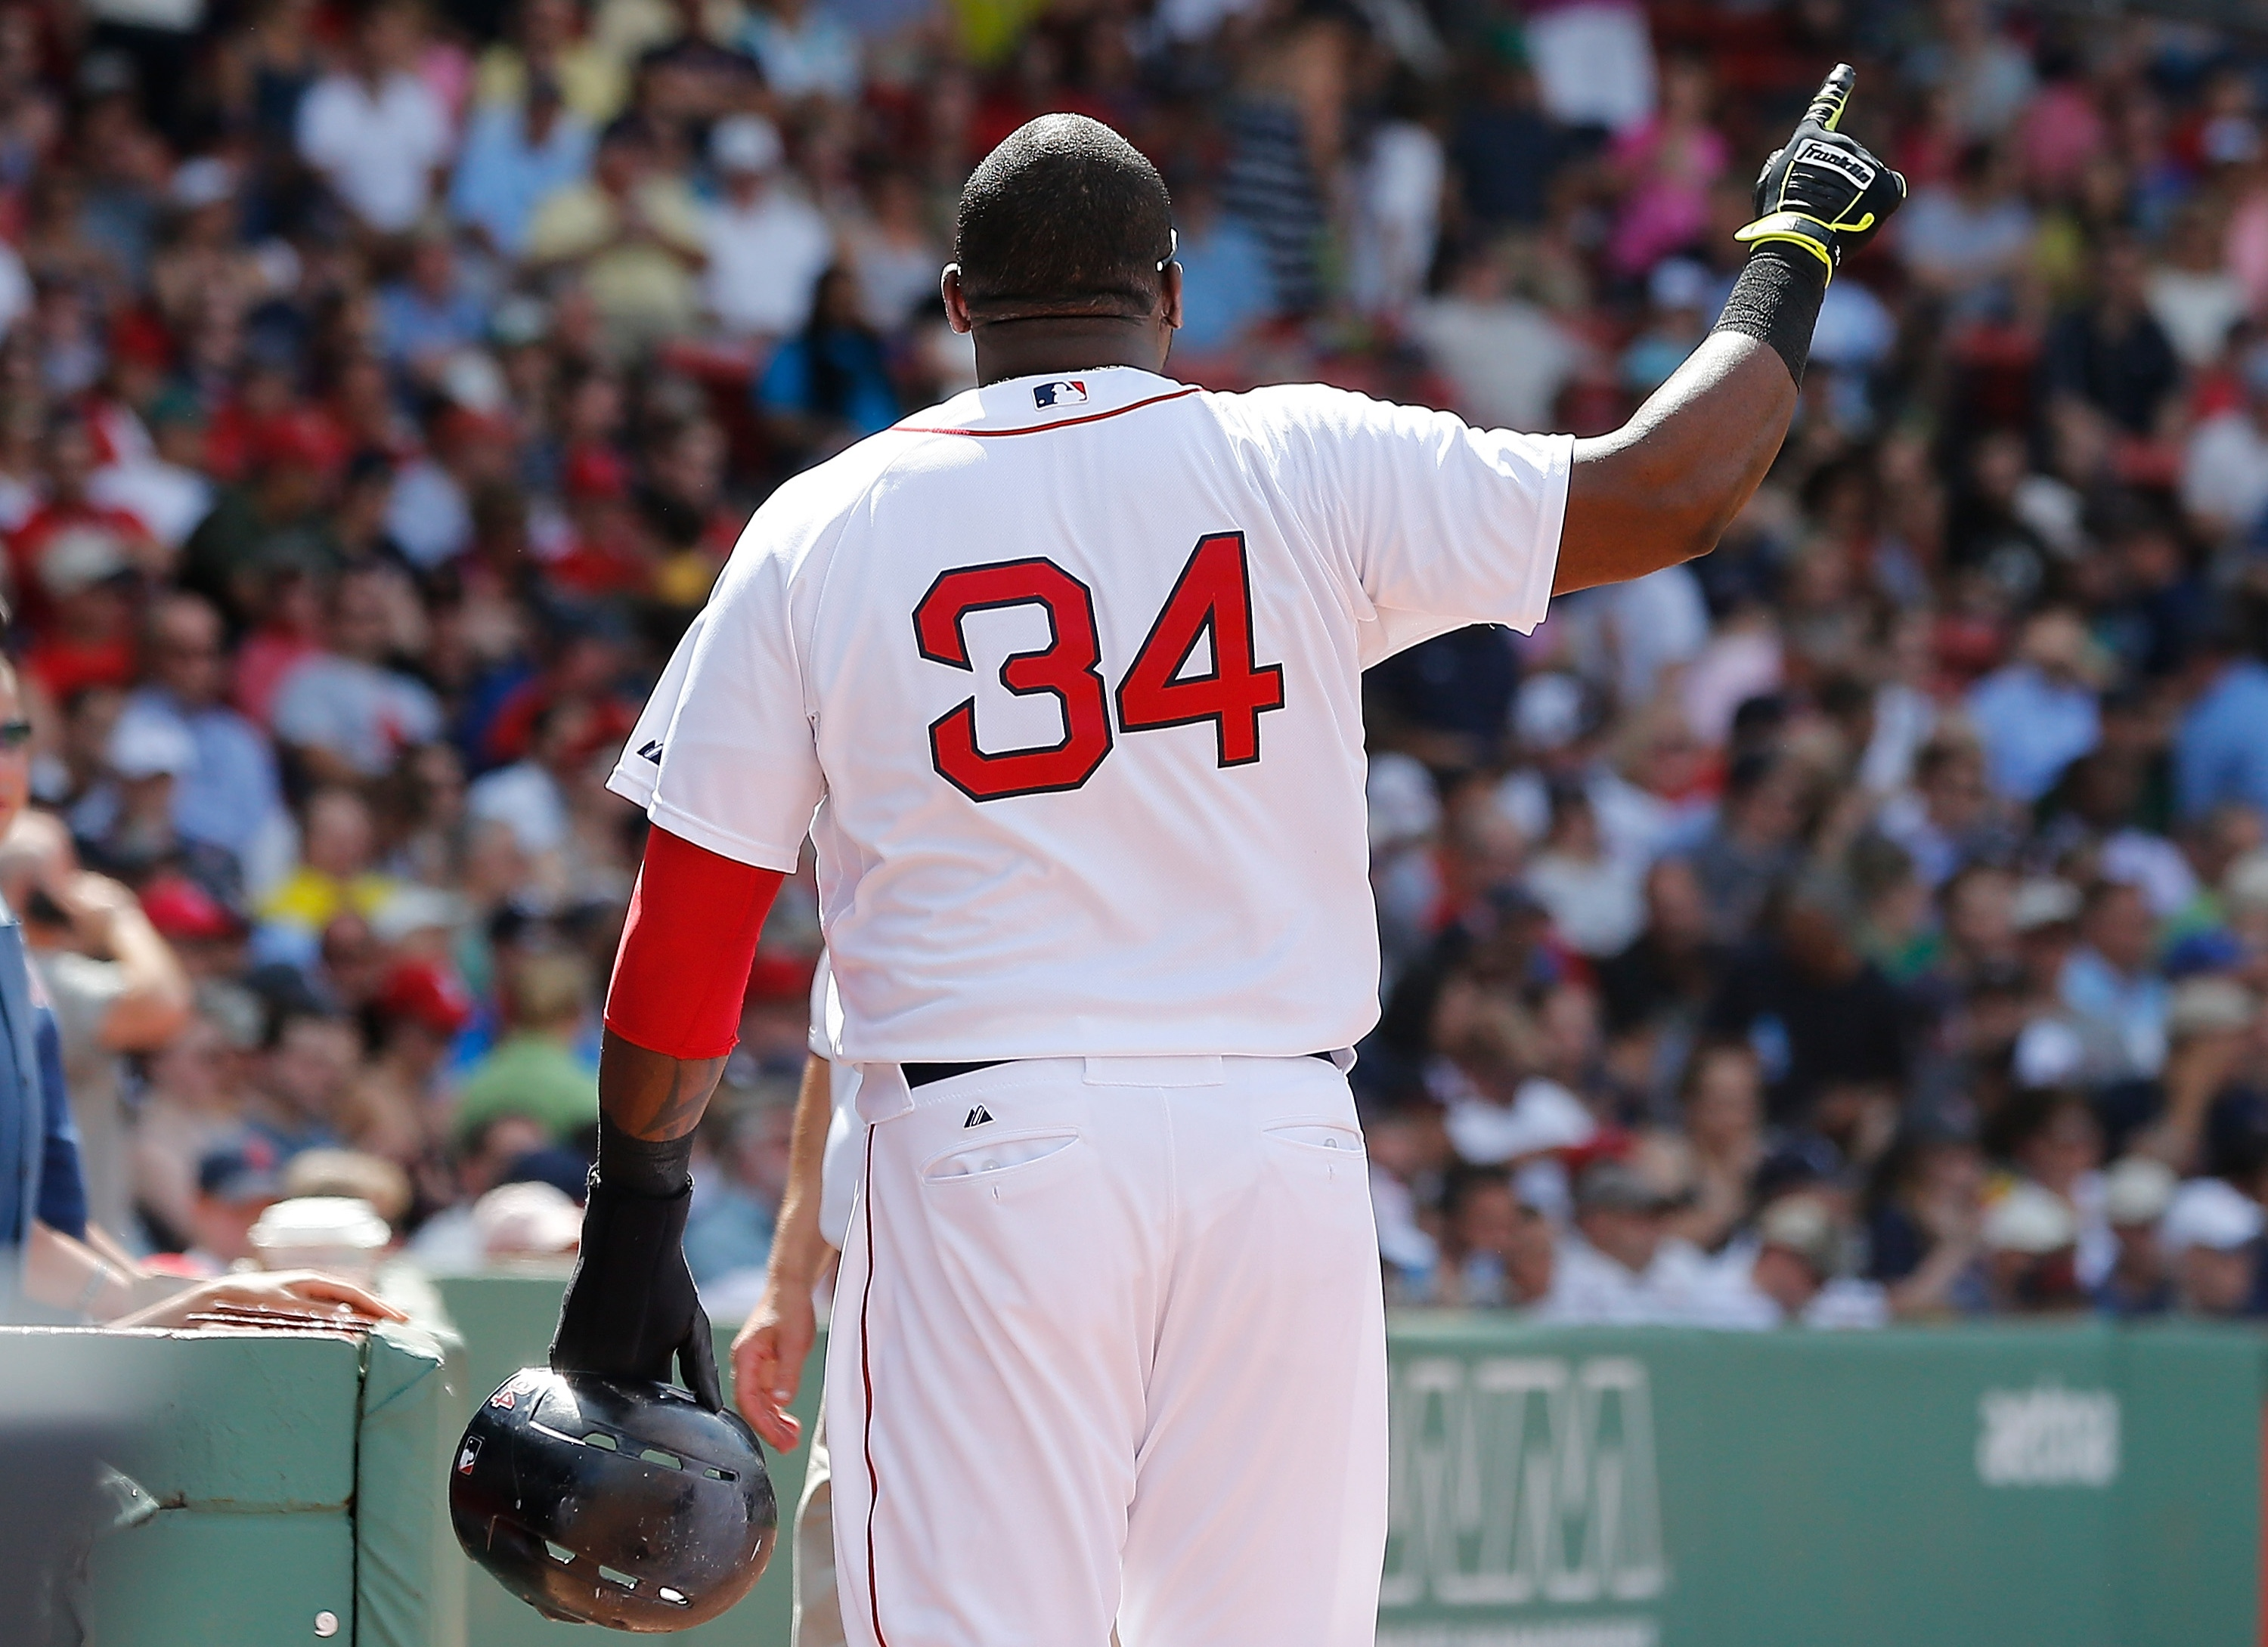 David Ortiz calls out Boston's official scorer after error ruli…